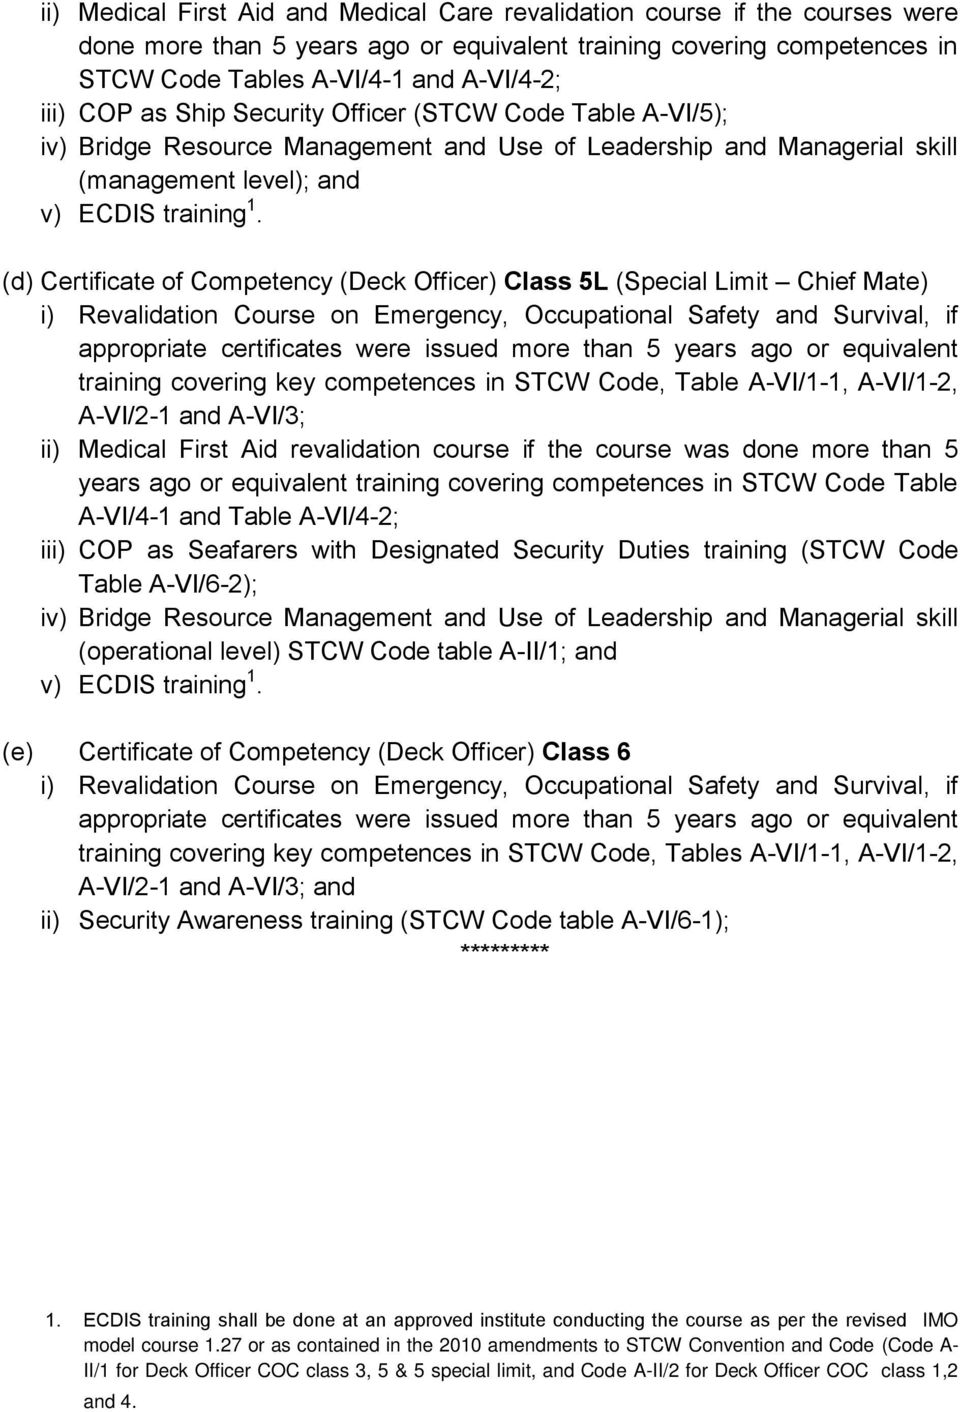 (d) Certificate of Competency (Deck Officer) Class 5L (Special Limit Chief Mate) training covering key competences in STCW Code, Table A-VI/1-1, A-VI/1-2, A-VI/2-1 and A-VI/3; ii) Medical First Aid